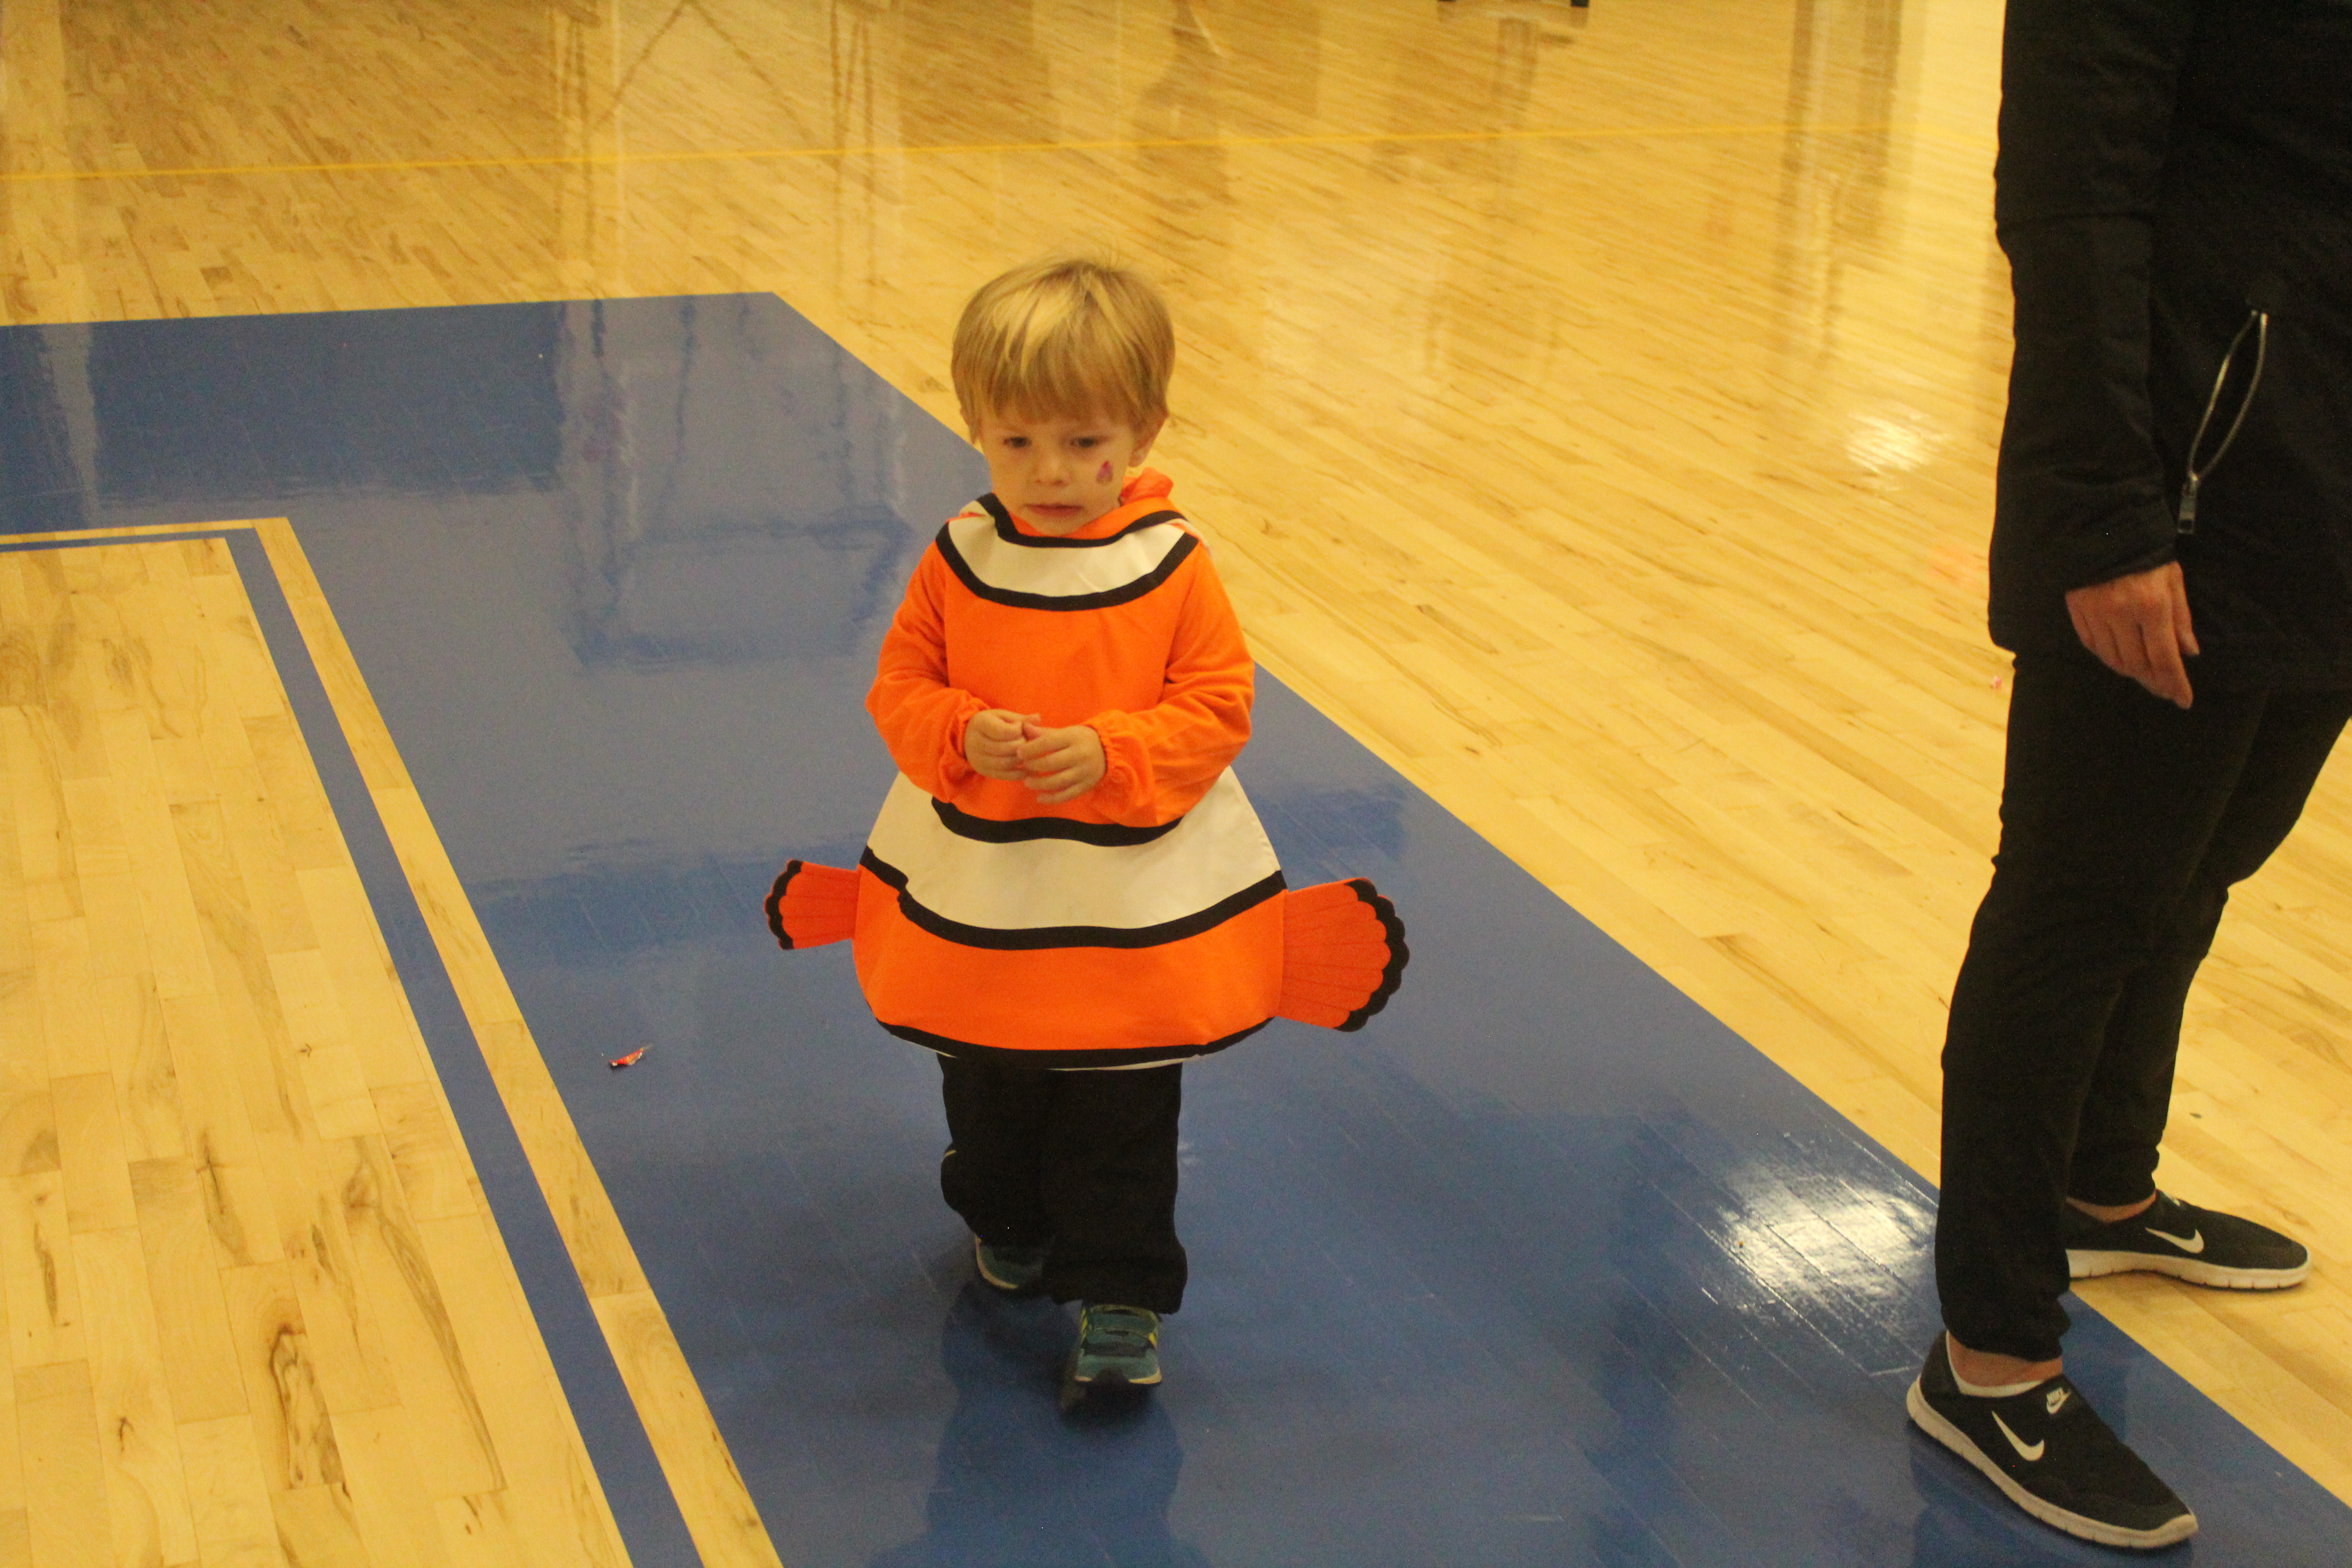 A boy is dressed as Nemo from Finding Nemo.